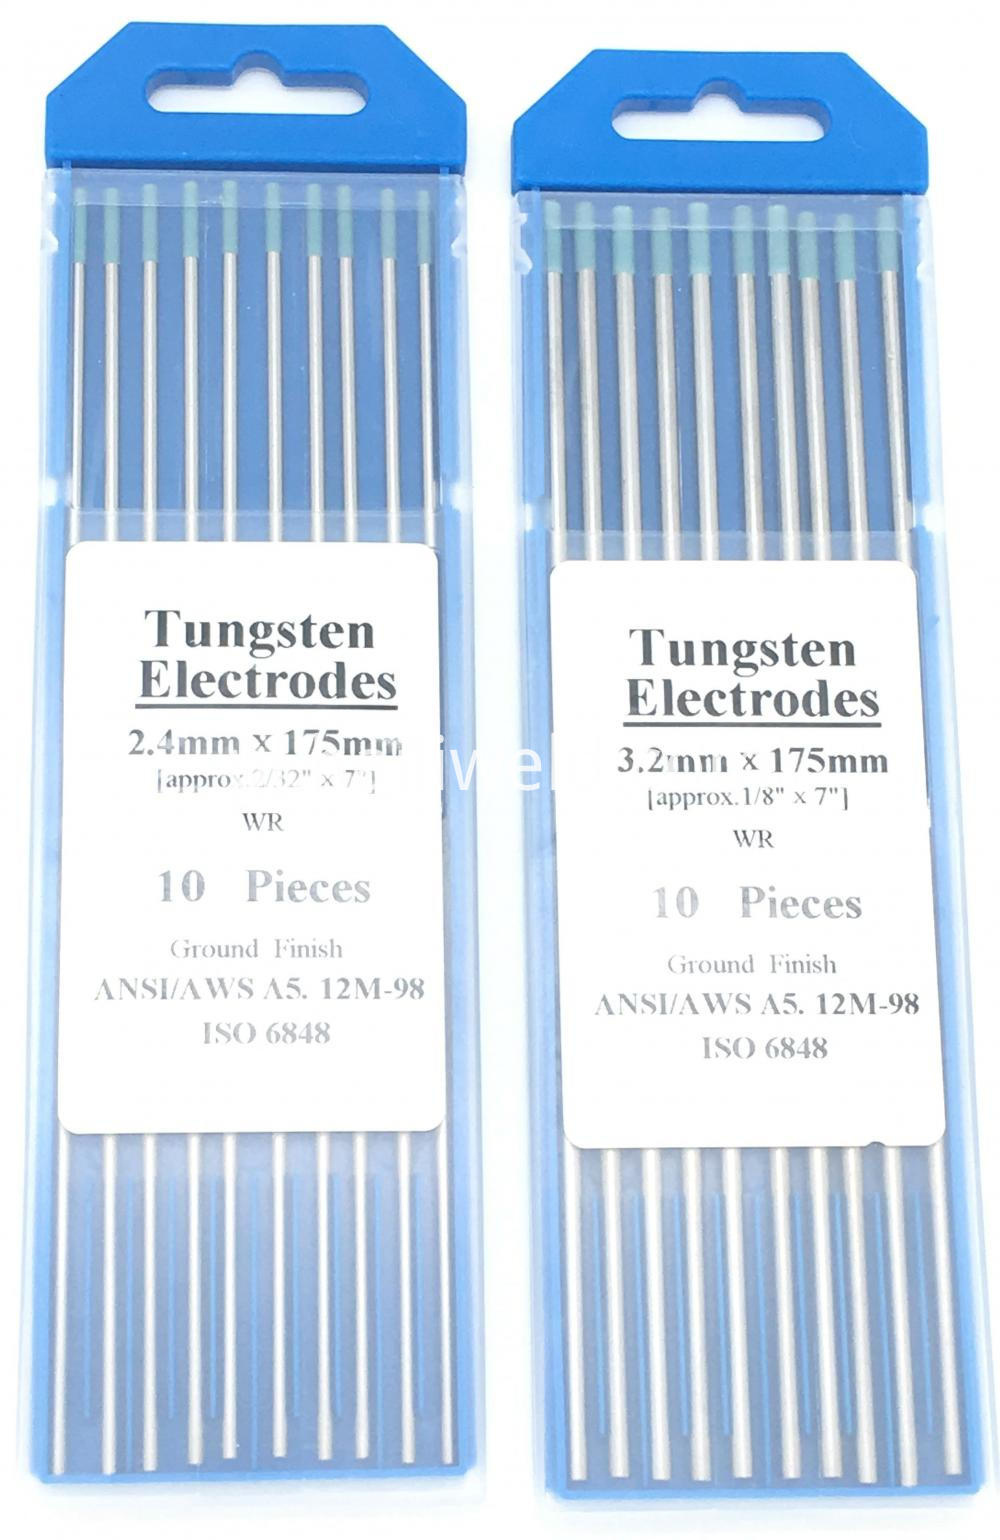 Wr Tig Welding Tungsten Electrodes Replaces Ws Tig Rod Tungsten Electrode